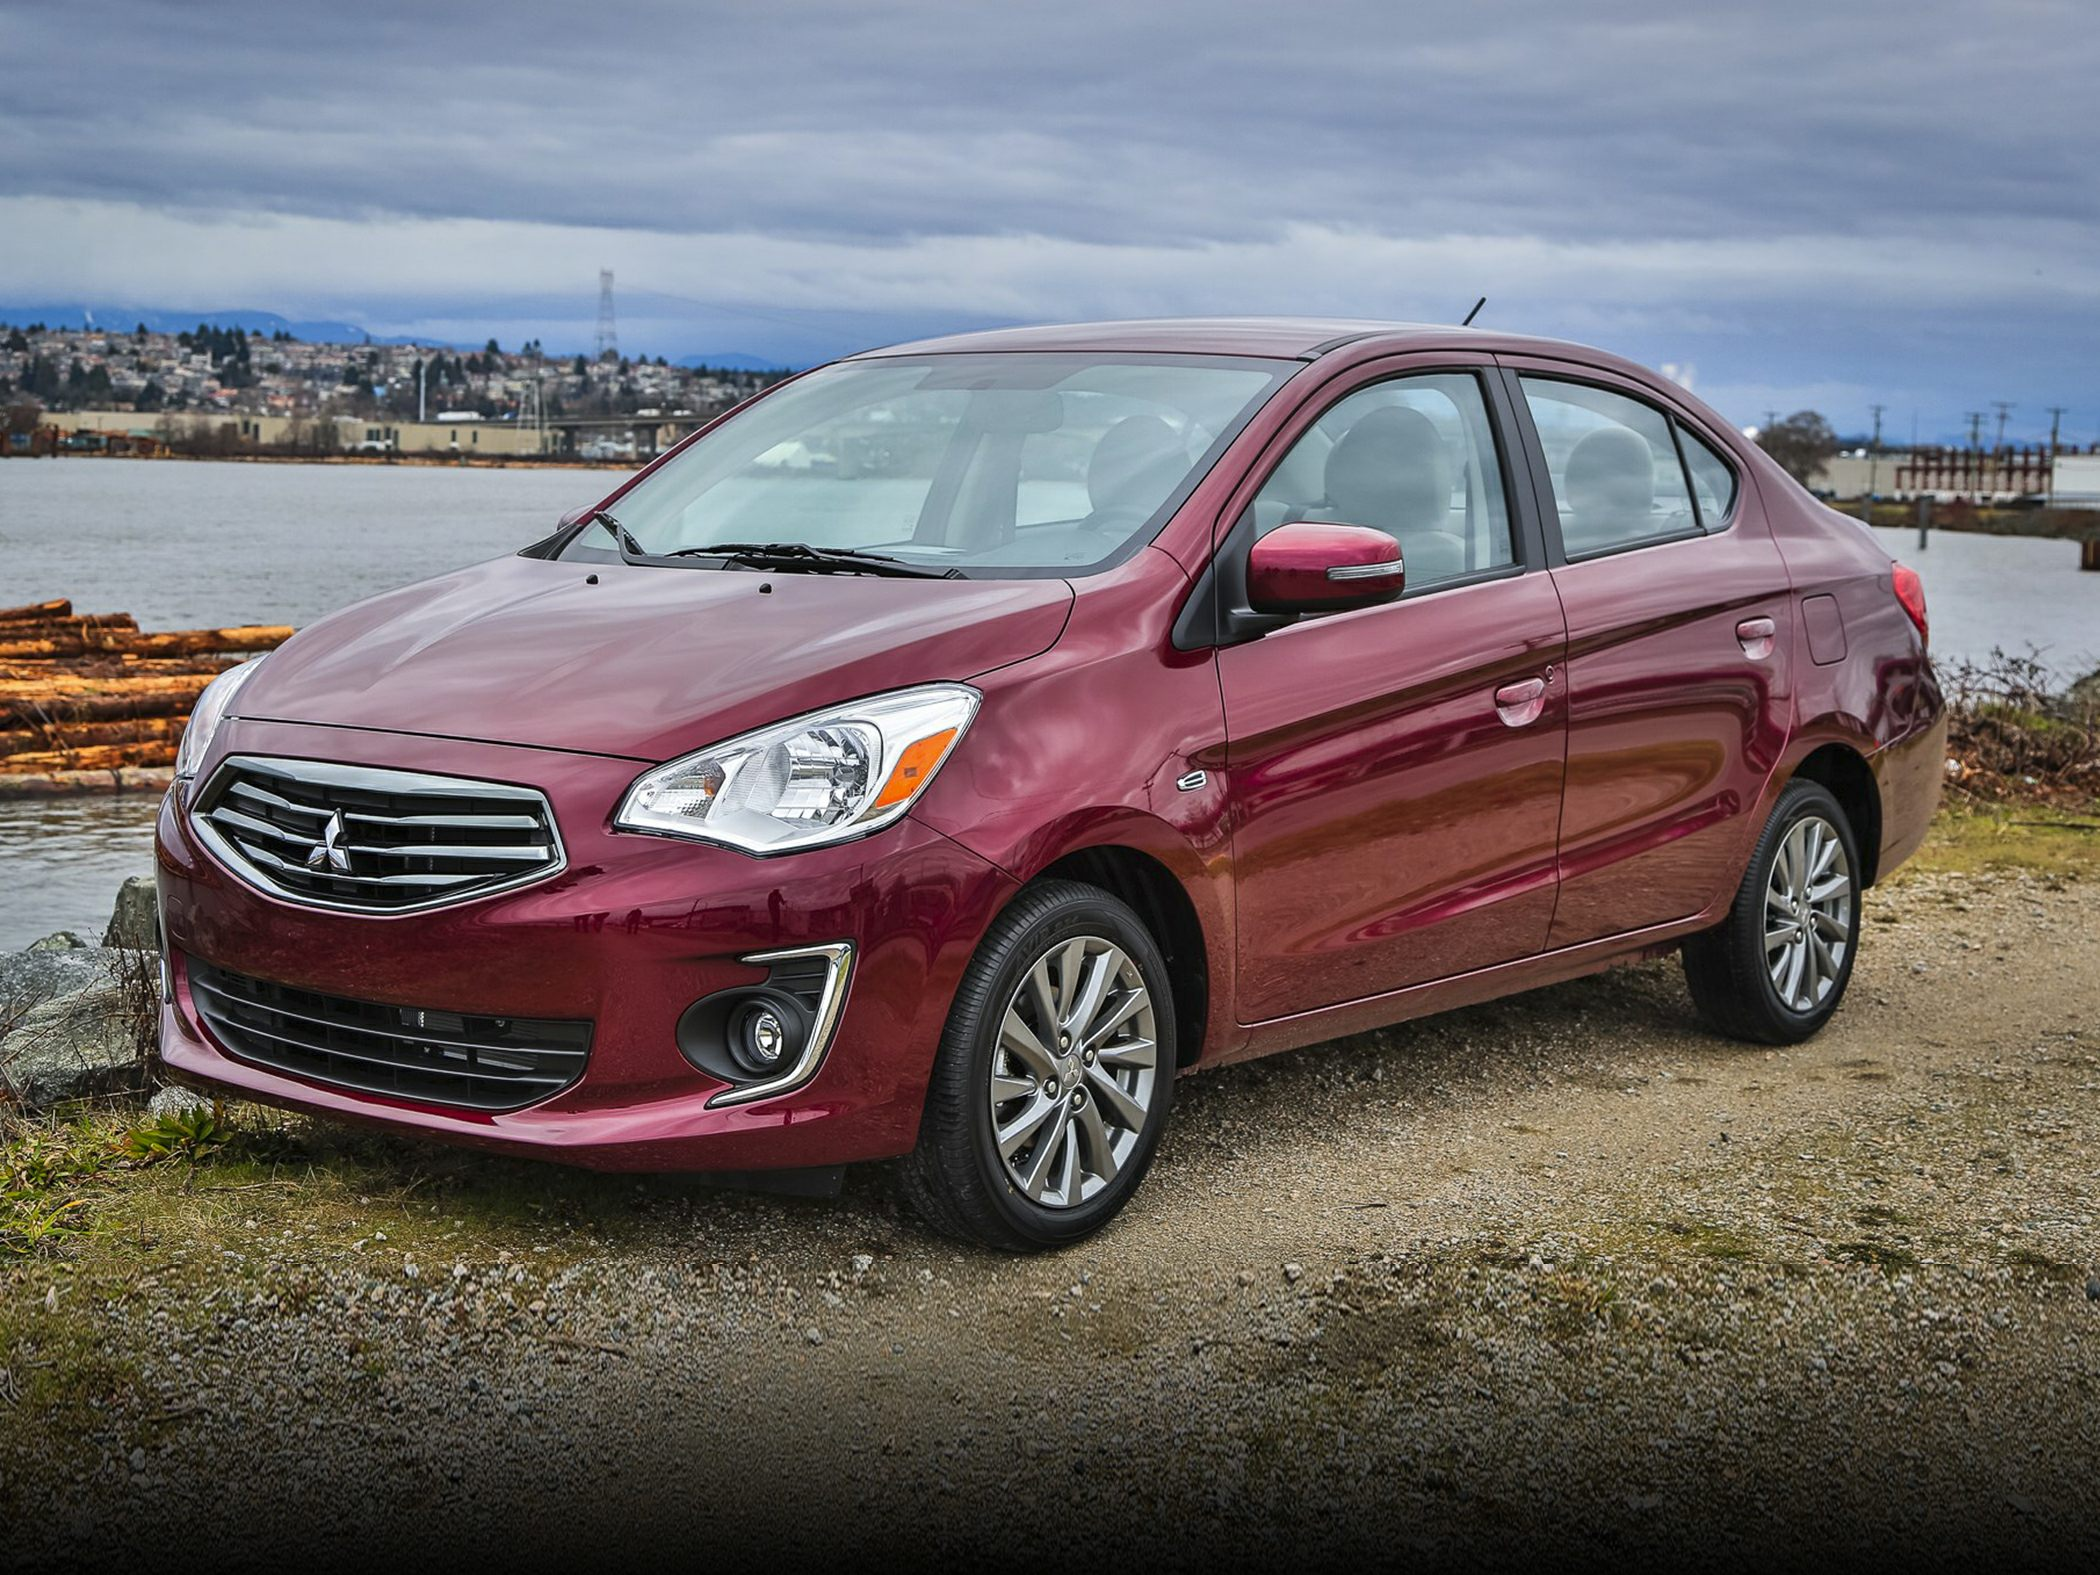 2017 Mitsubishi Mirage G4 Deals, Prices, Incentives & Leases, Overview - CarsDirect